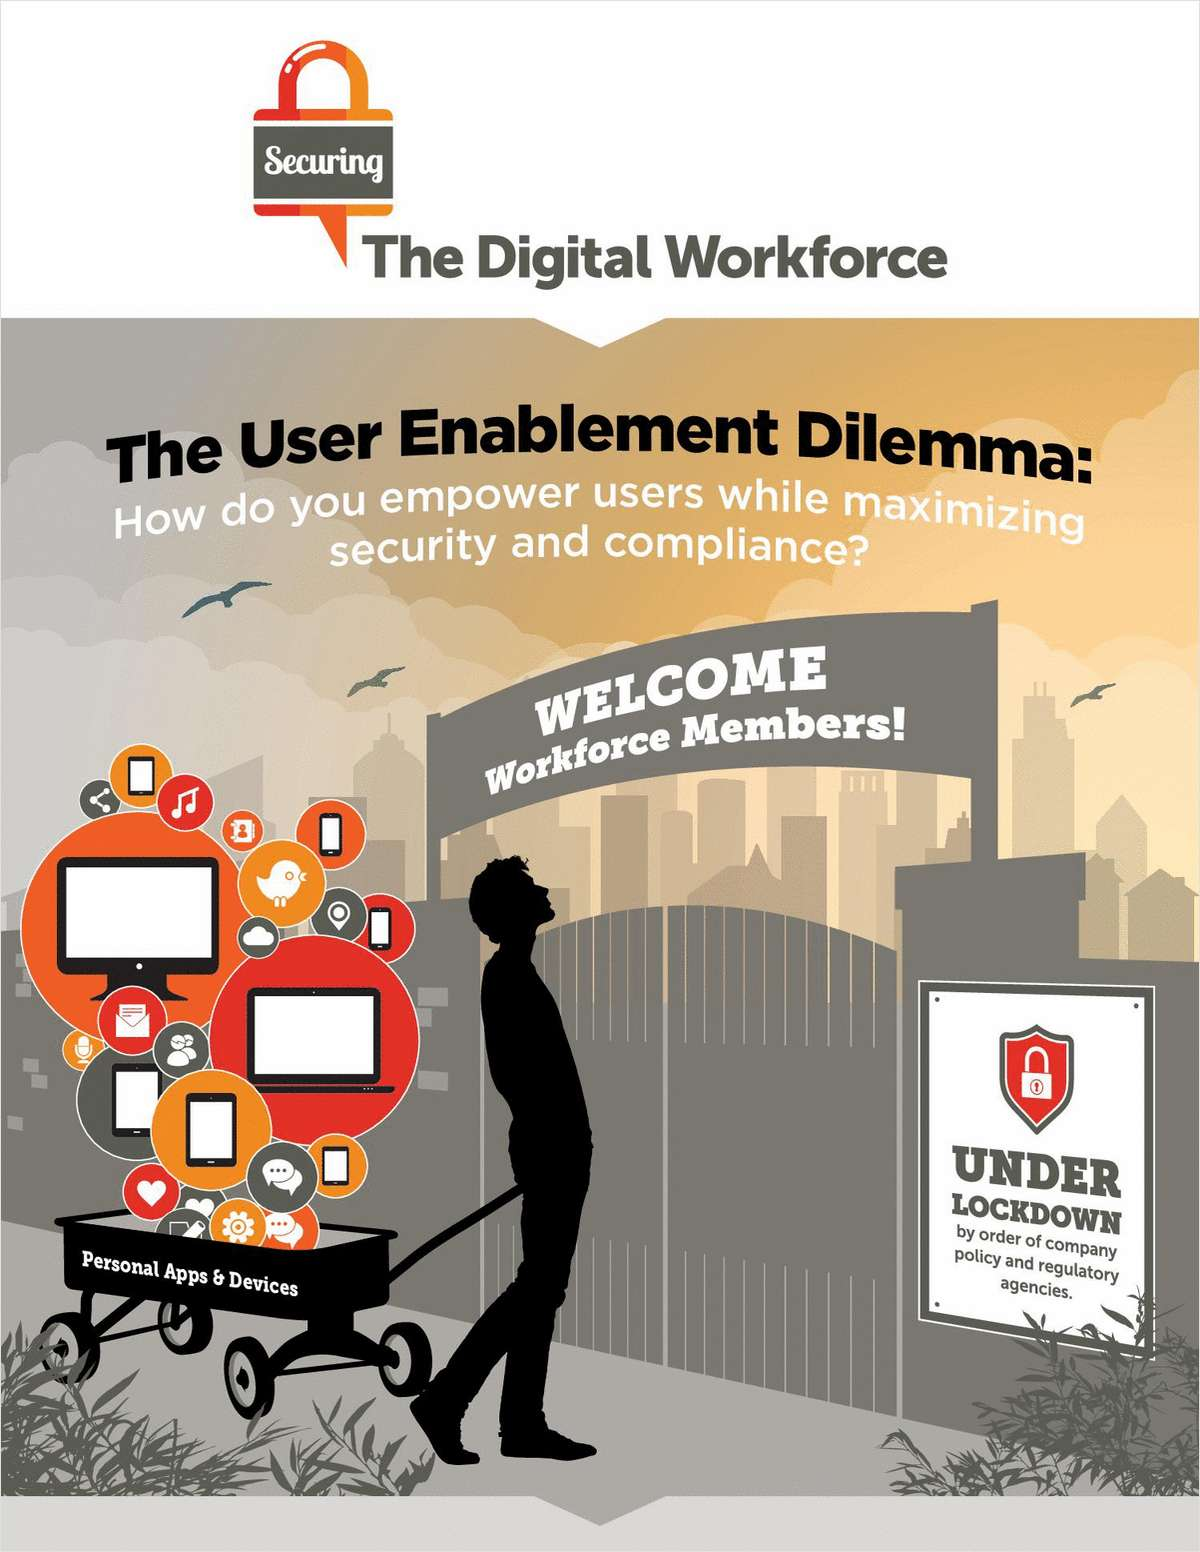 The User Enablement Dilemma